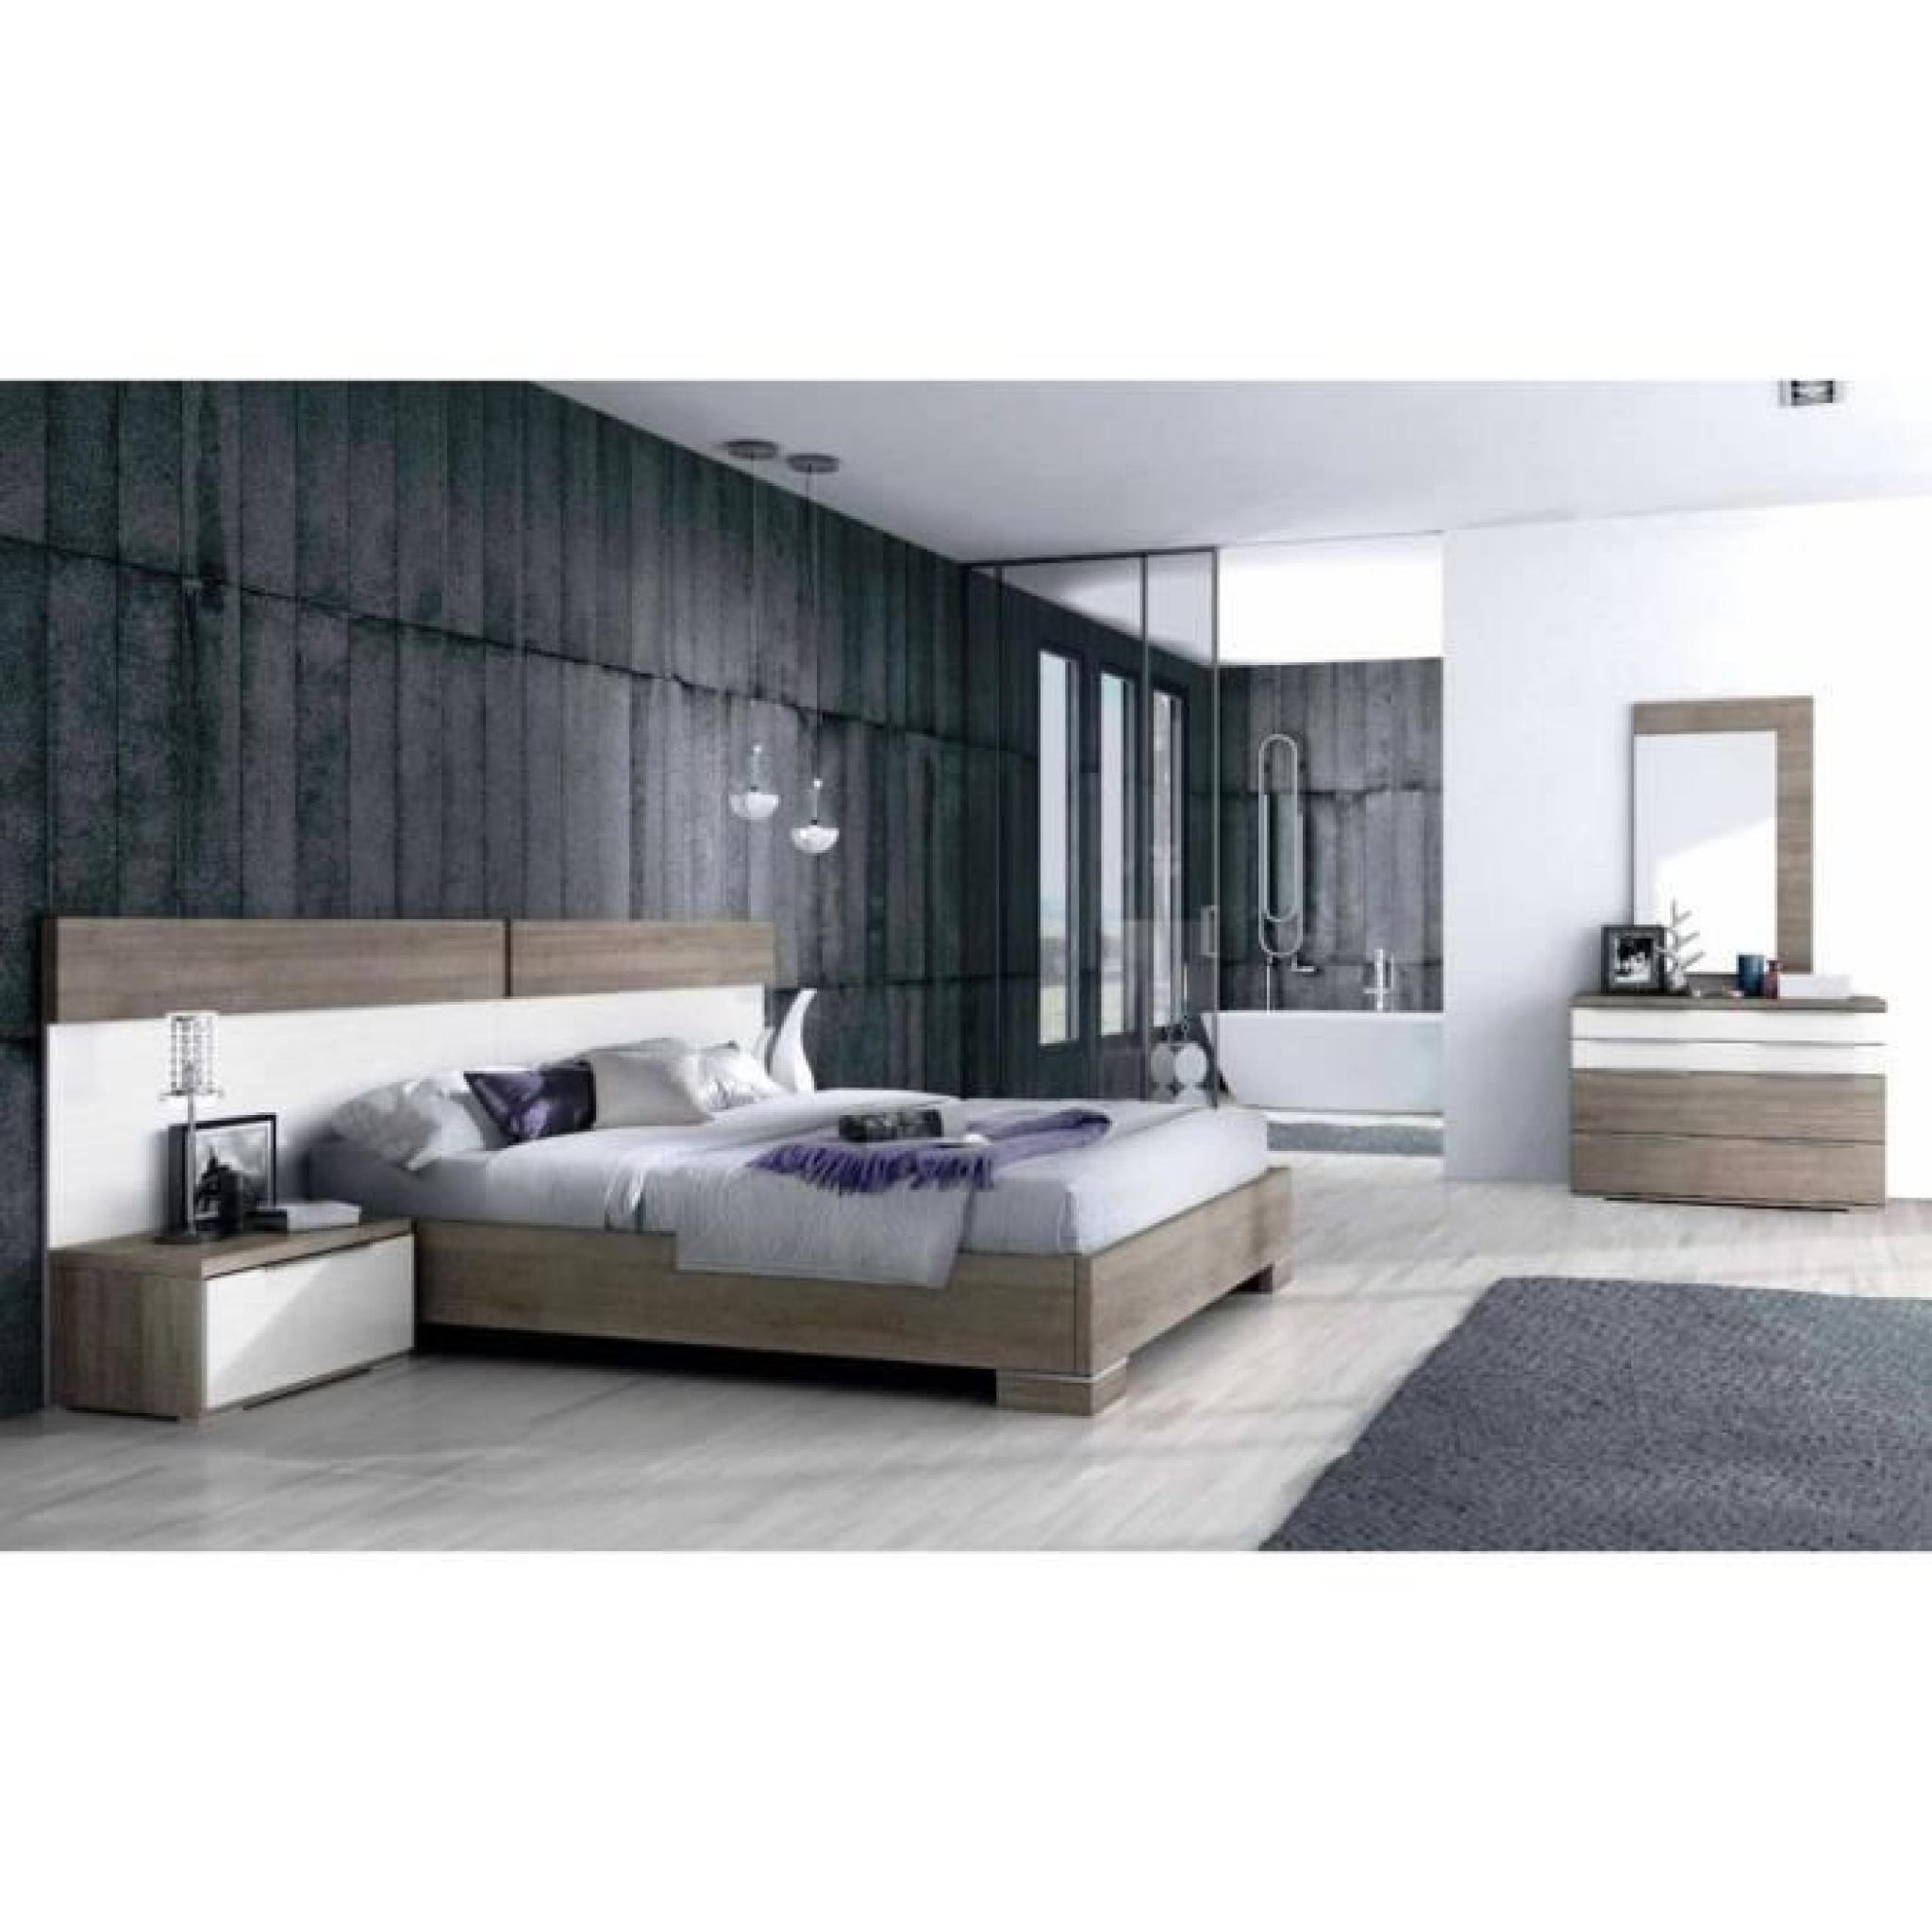 chambre coucher contemporaine 160 x 190 cm achat vente chambre complete pas cher couleur. Black Bedroom Furniture Sets. Home Design Ideas